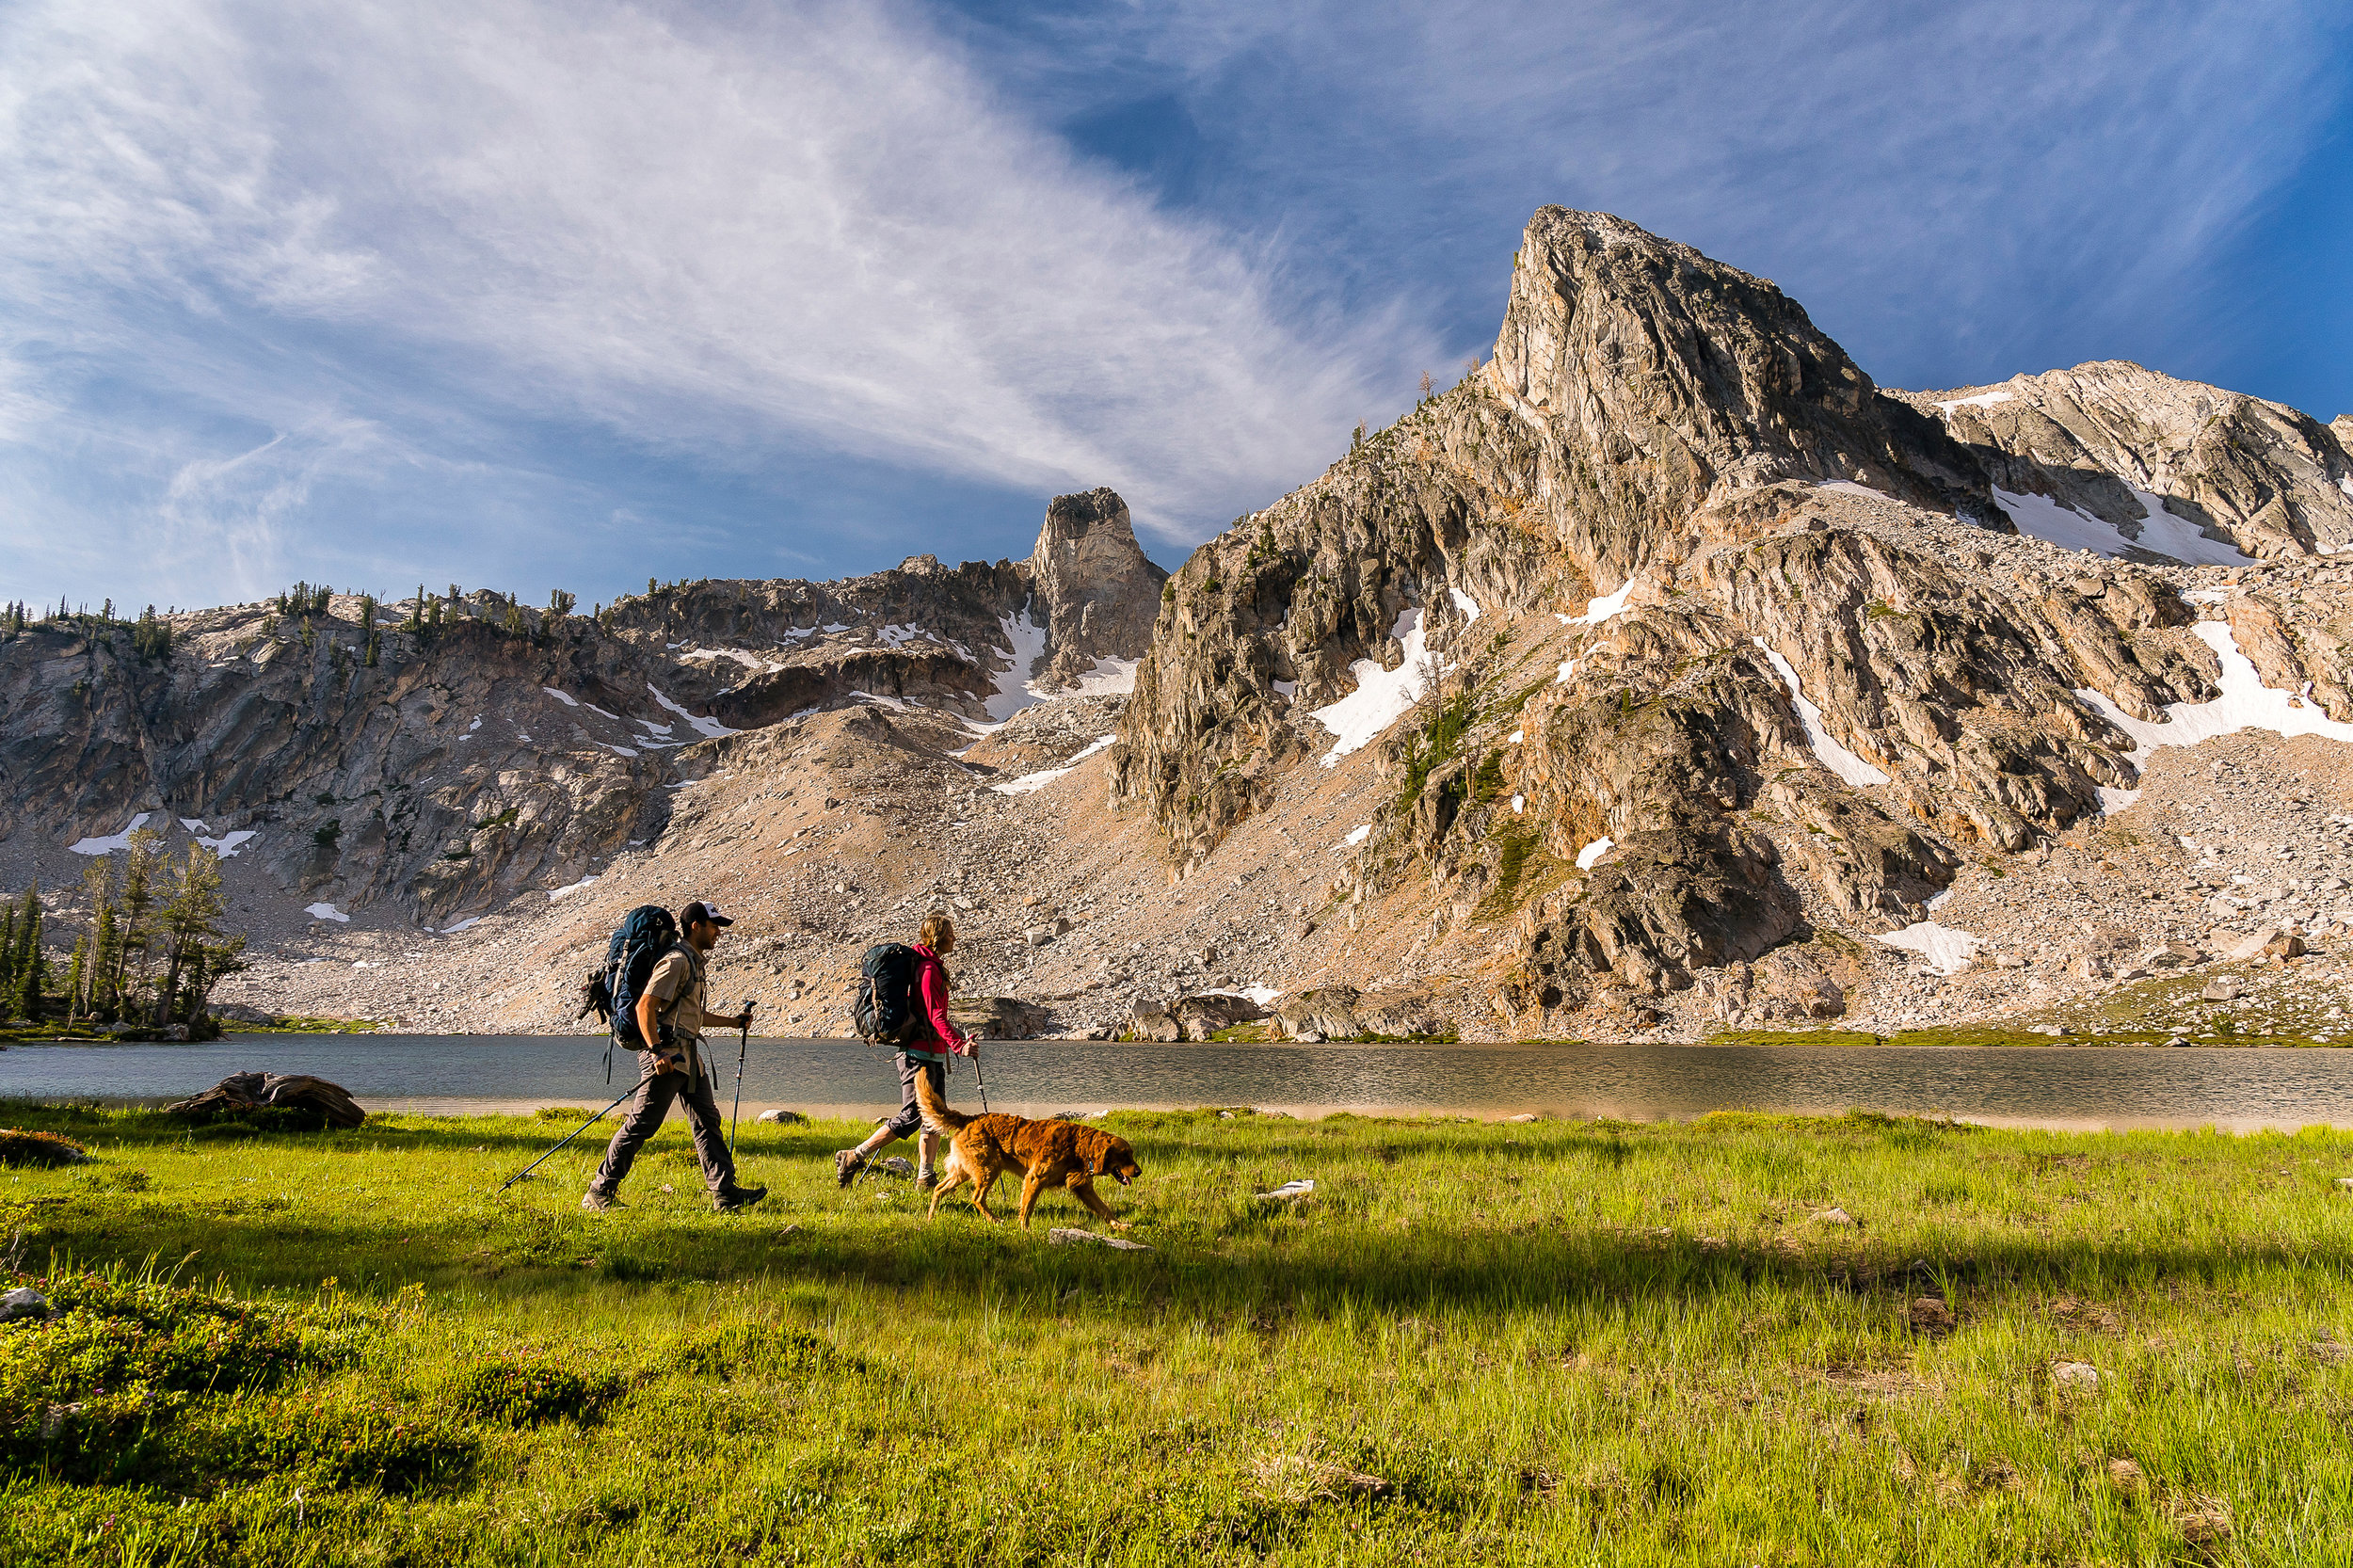 outdoor_lifestyle_Idaho_Ketchum_hiking_Stephen_Matera_7-21-18_DSC5847.jpg